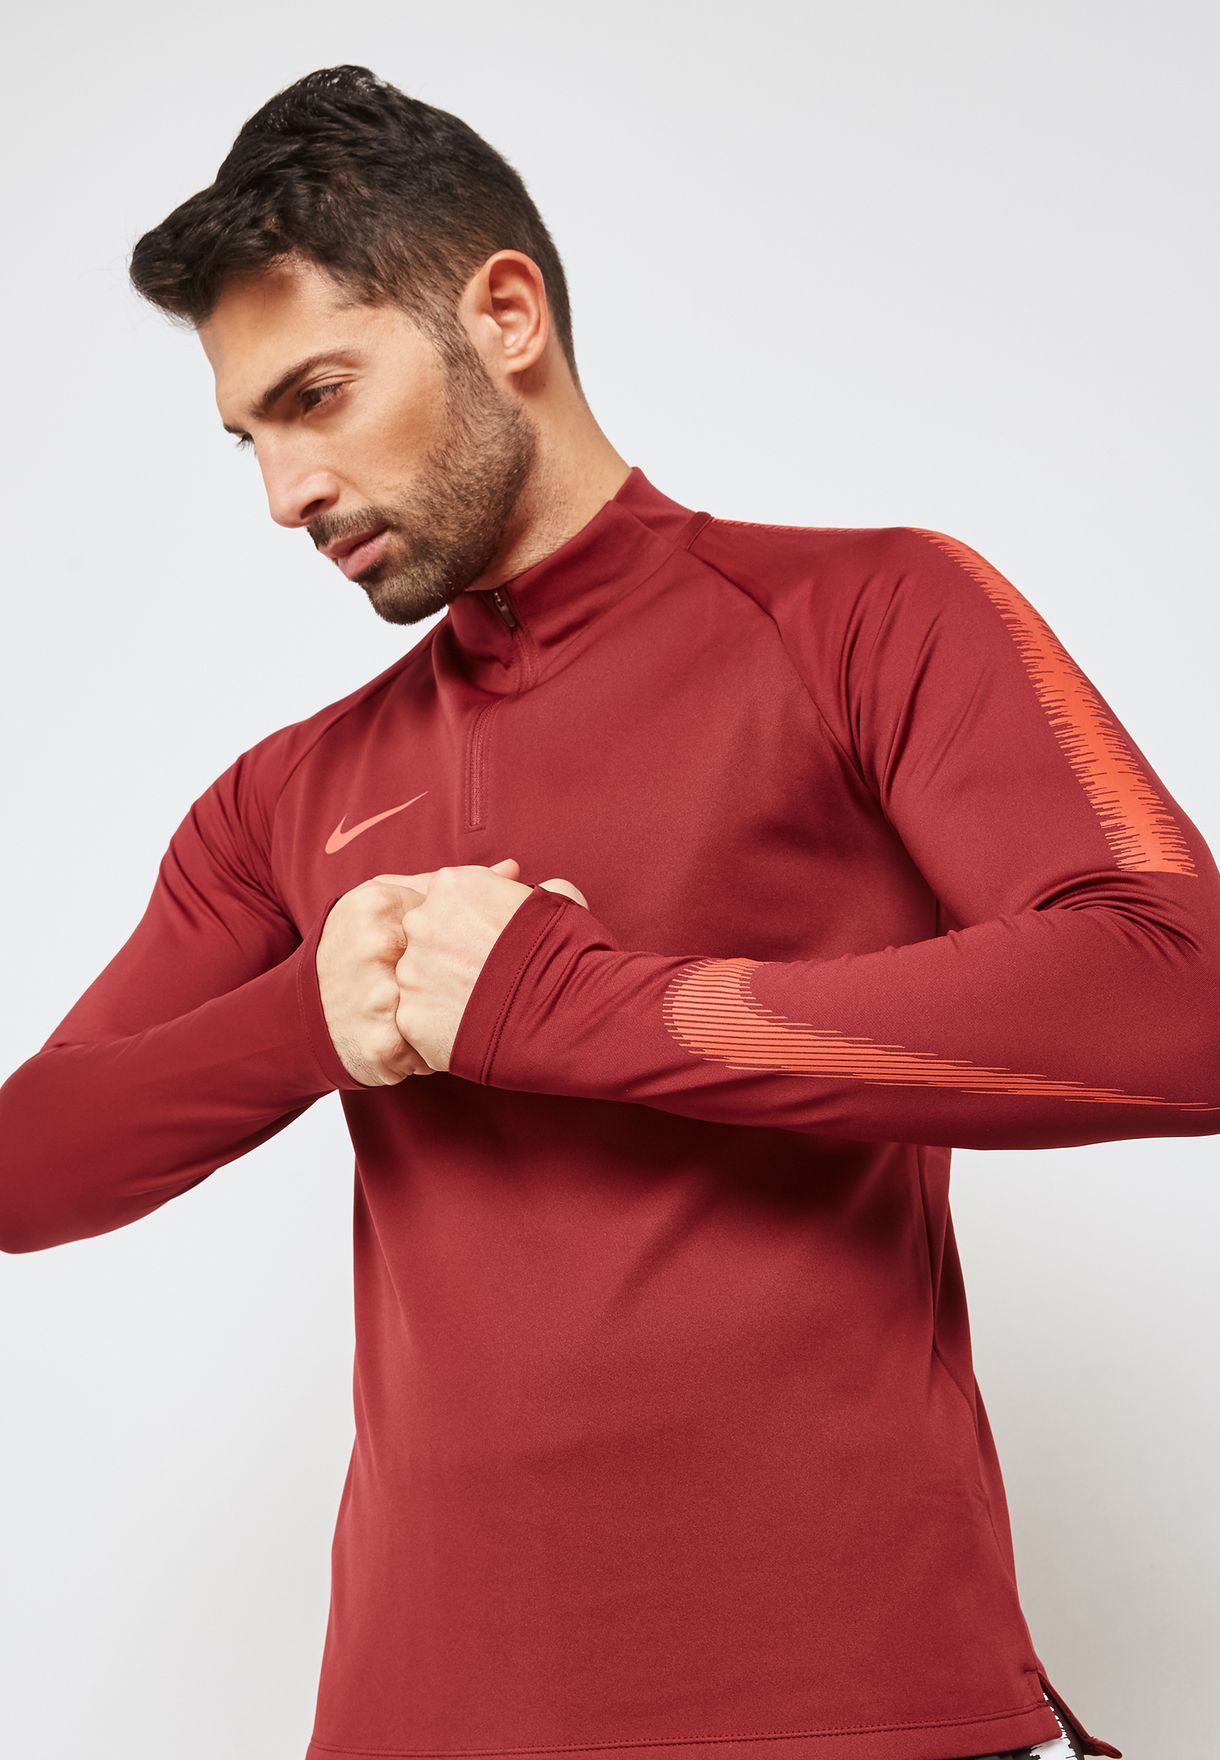 347e0f19 Nike Long Sleeve Shirts With Thumb Holes - Aztec Stone and Reclamations